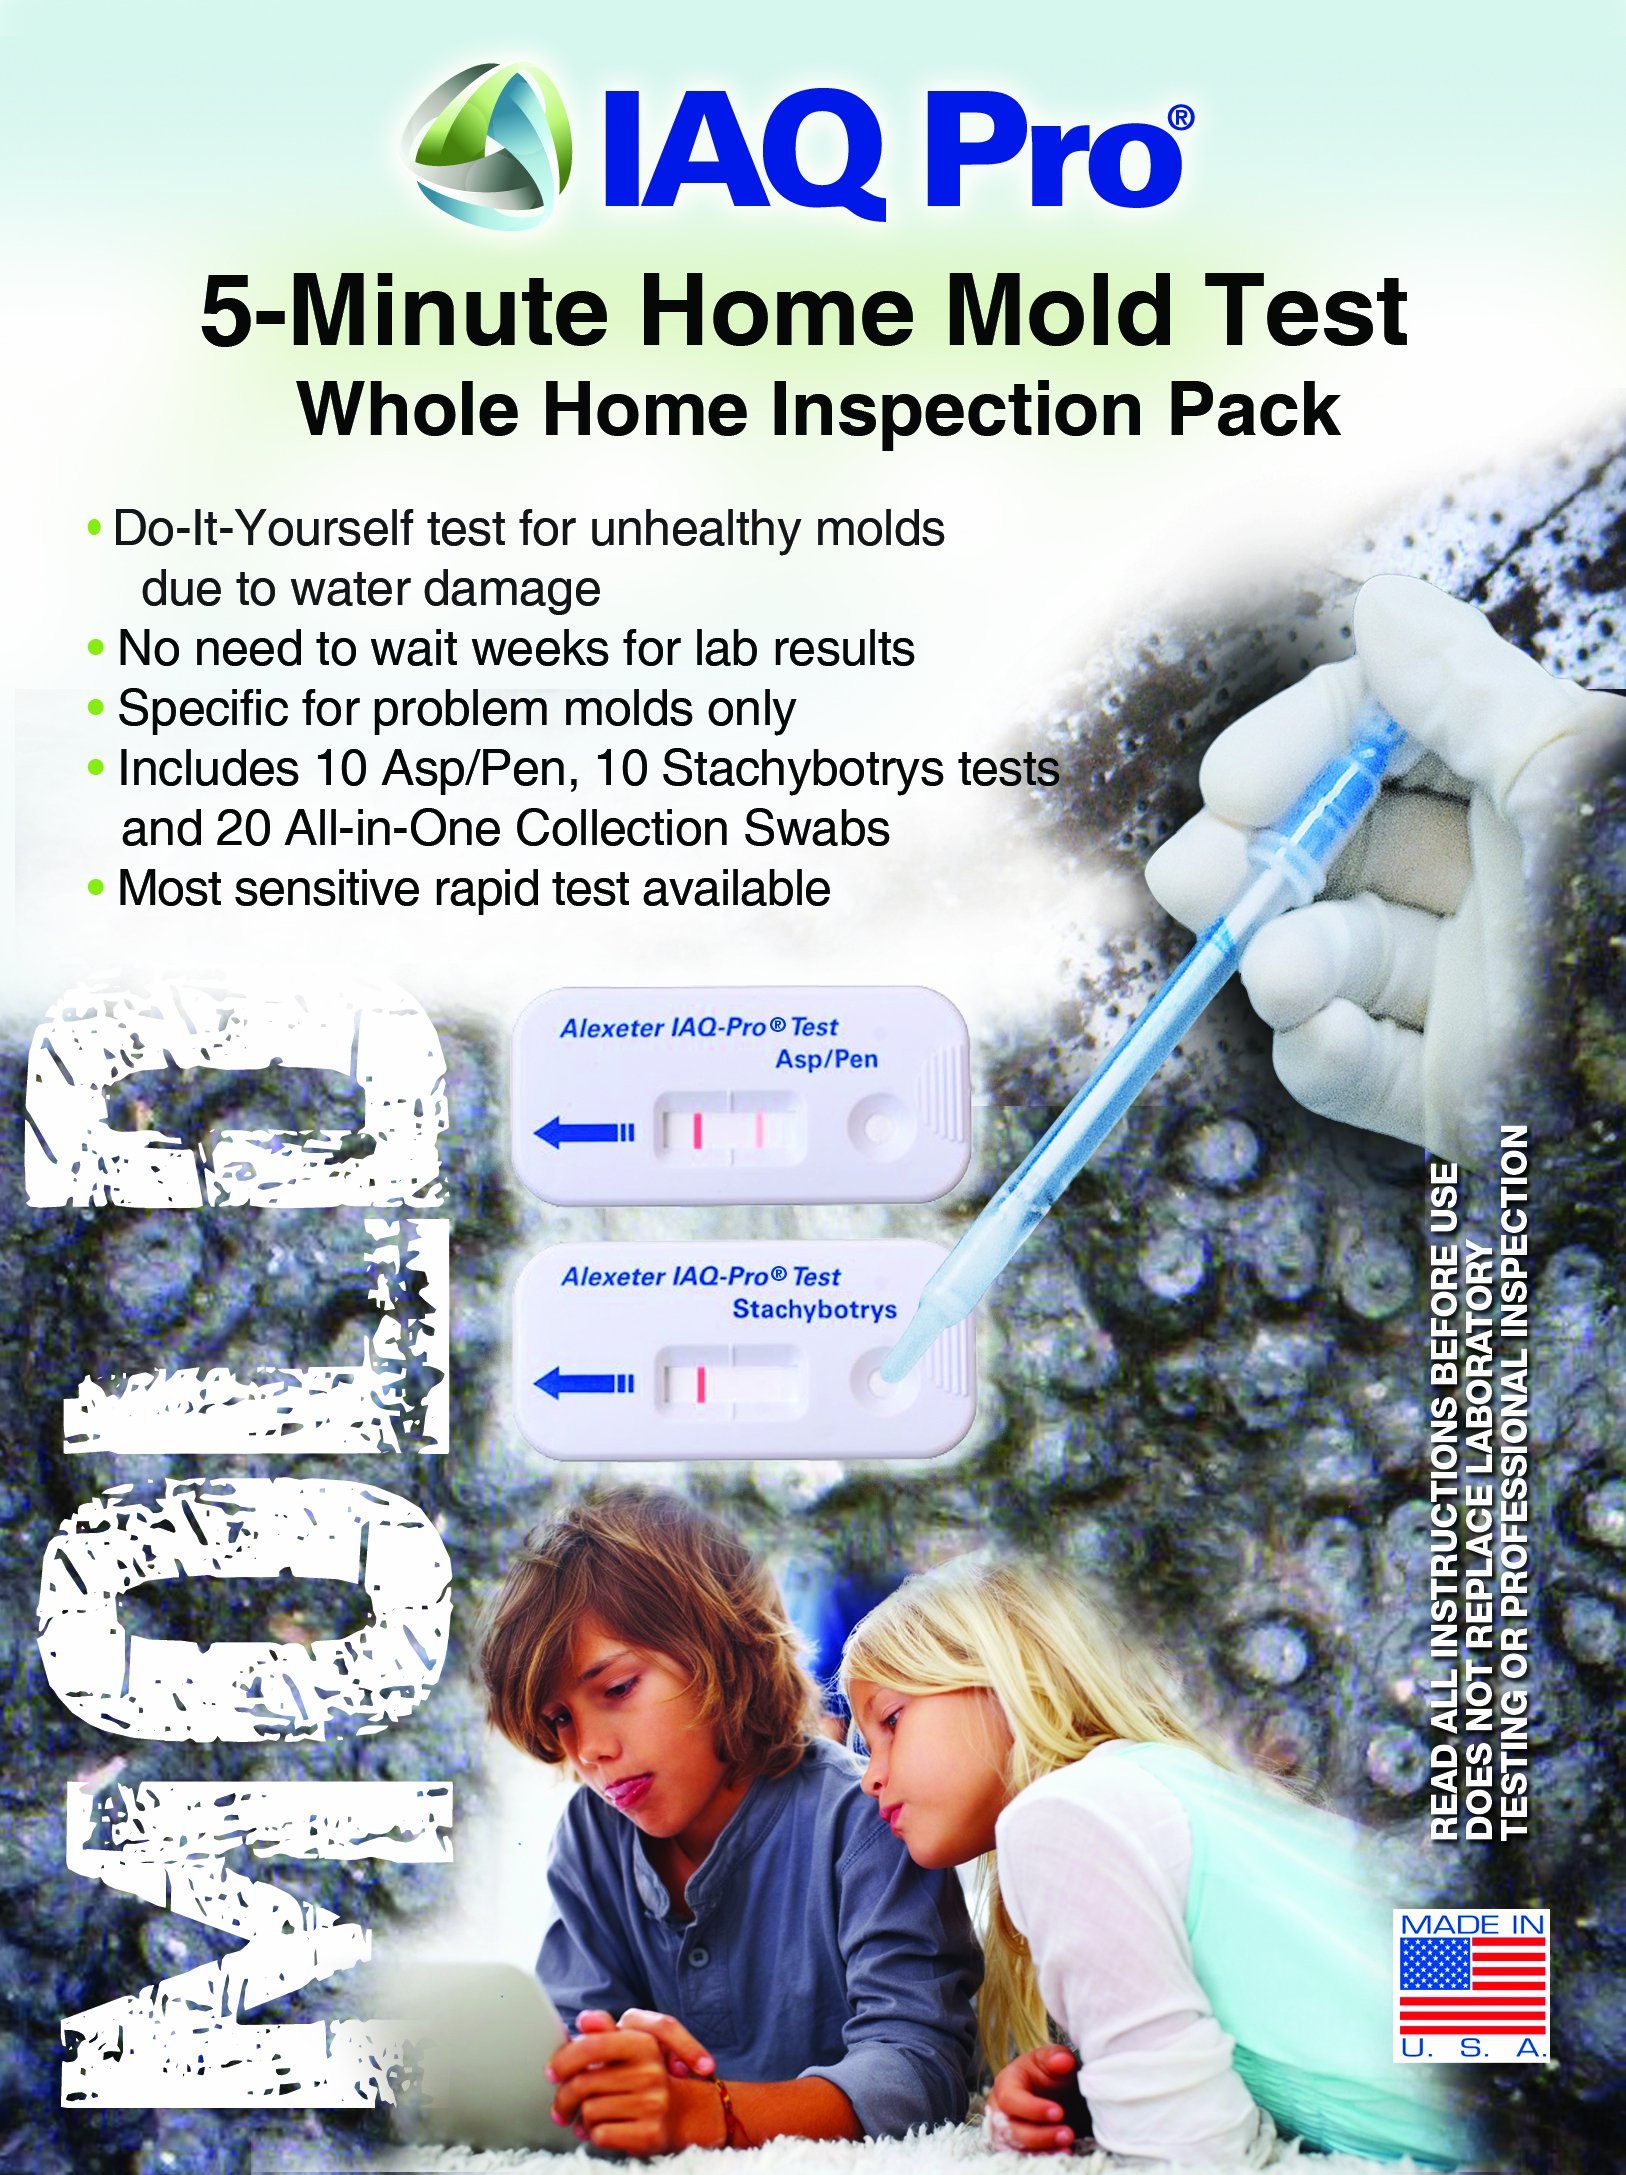 IAQ Pro 5-Minute Mold Test Whole Home Inspection Pack by Alexeter Technologies